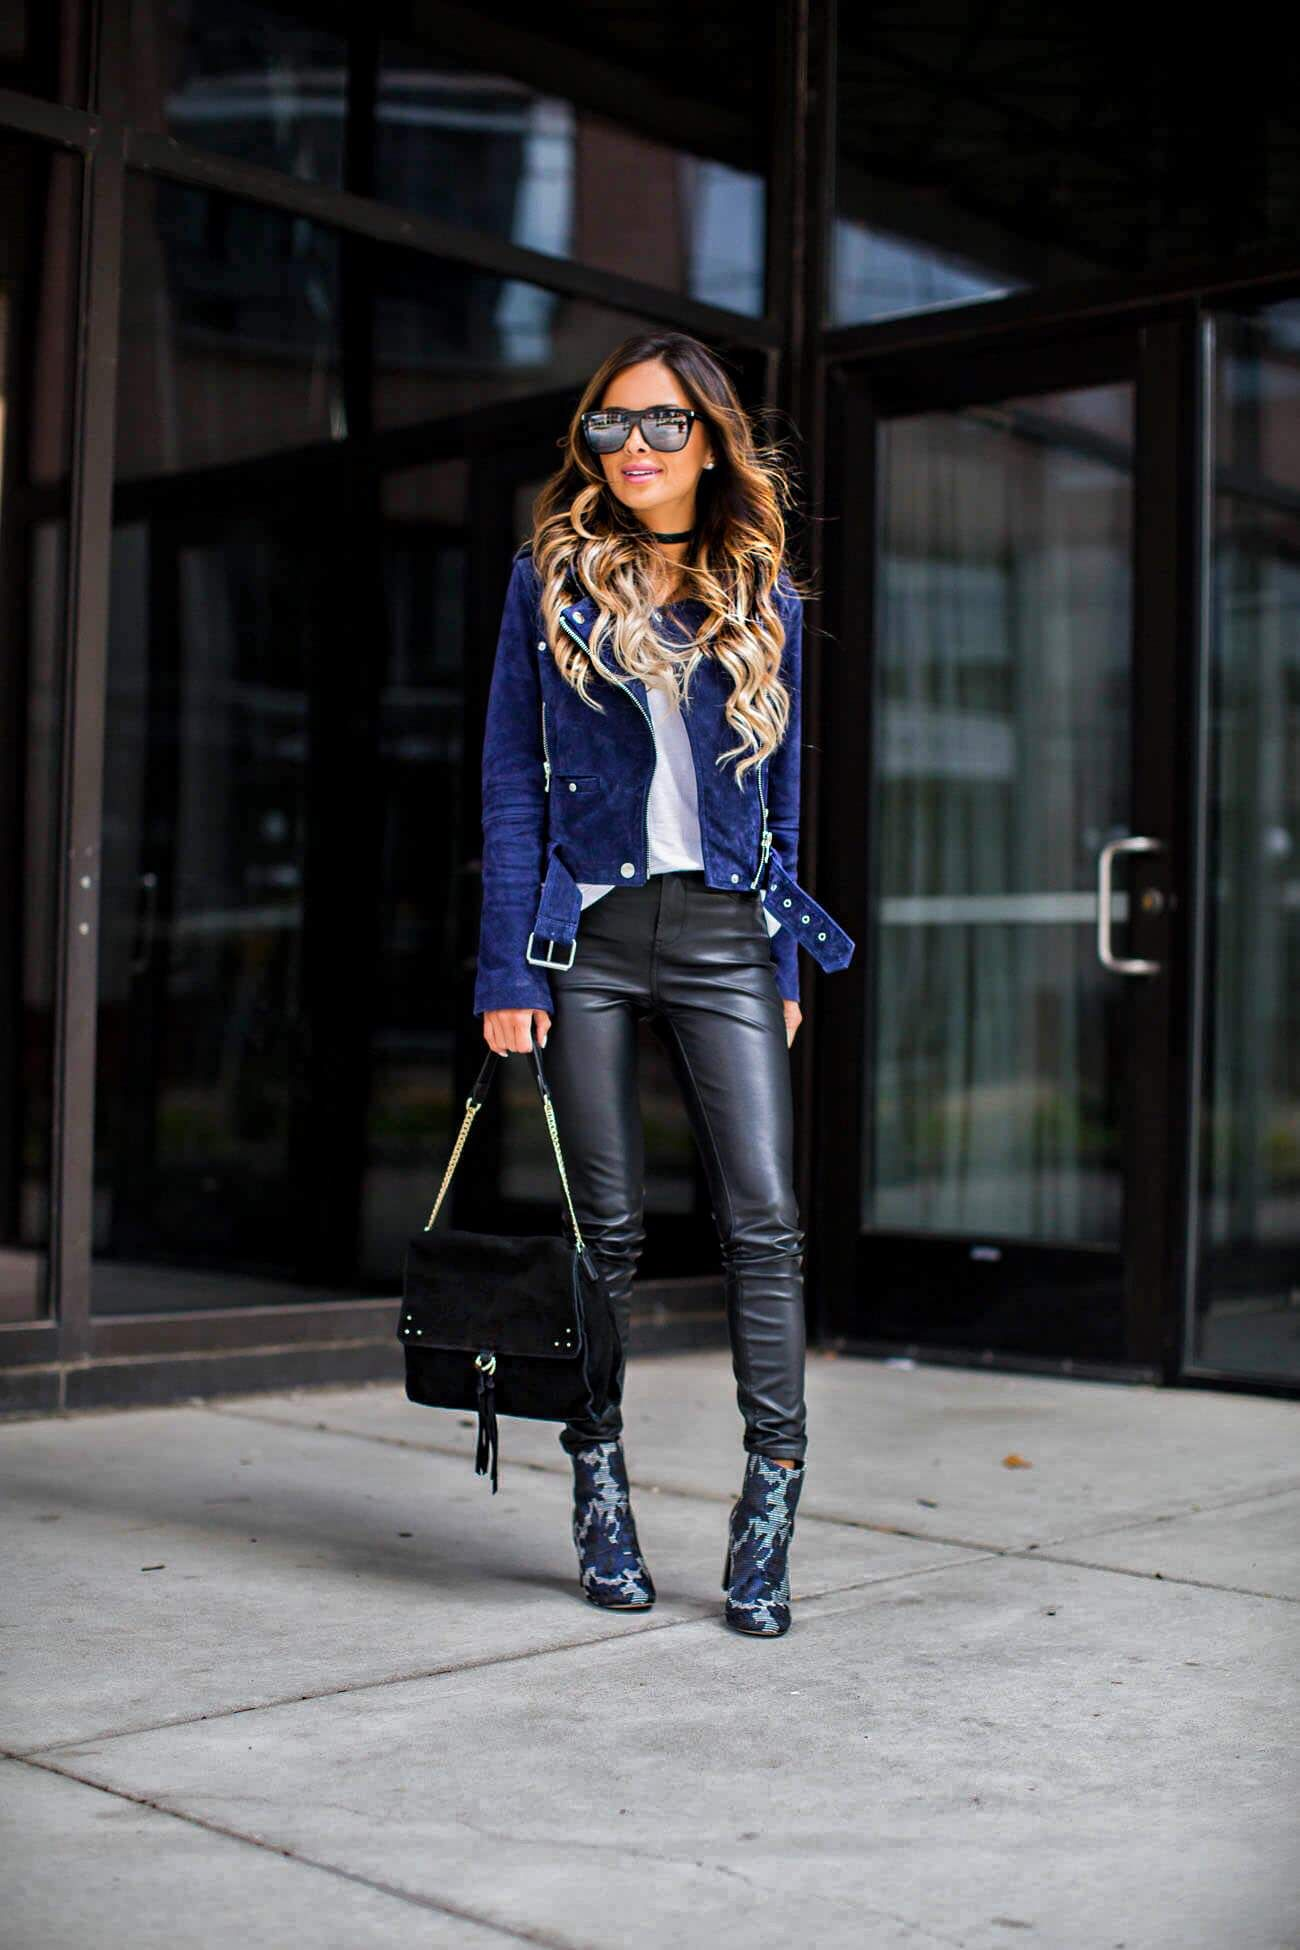 c8f1719d09a9 fashion blogger Mia Mia Mine wearing blanknyc vegan leather pants and  embroidered booties from sole society